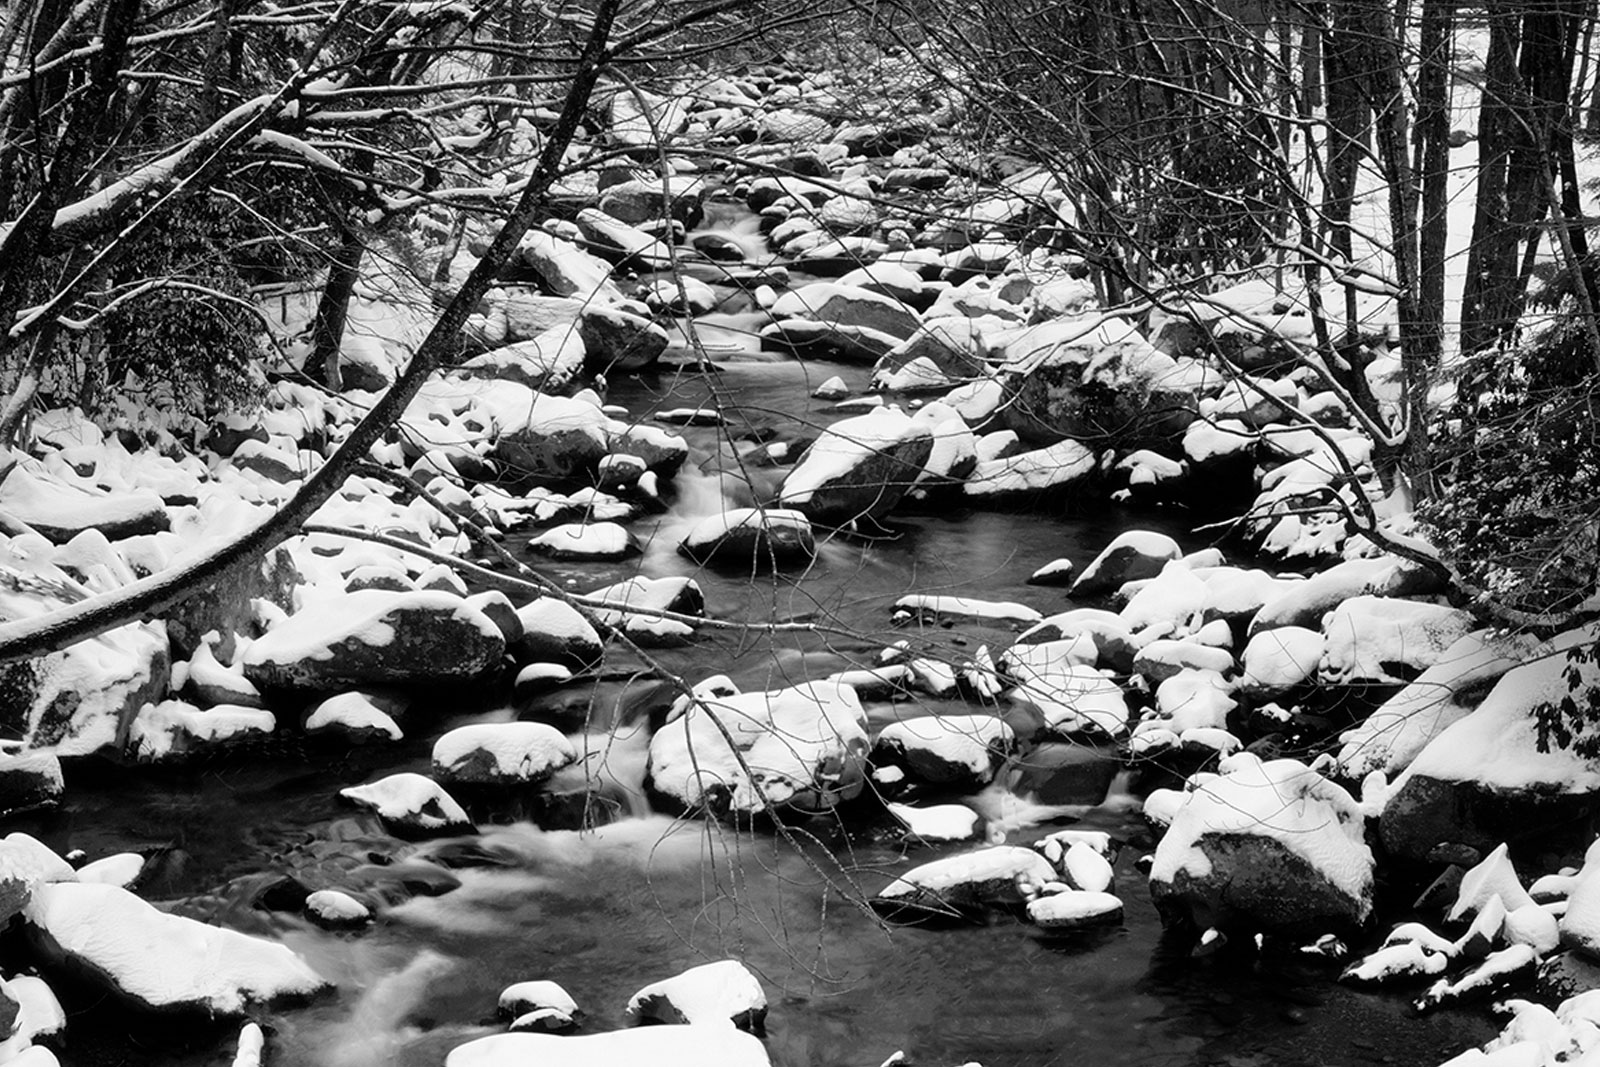 Black and white photo of snow and a mountain stream. Photo by Willard Clay